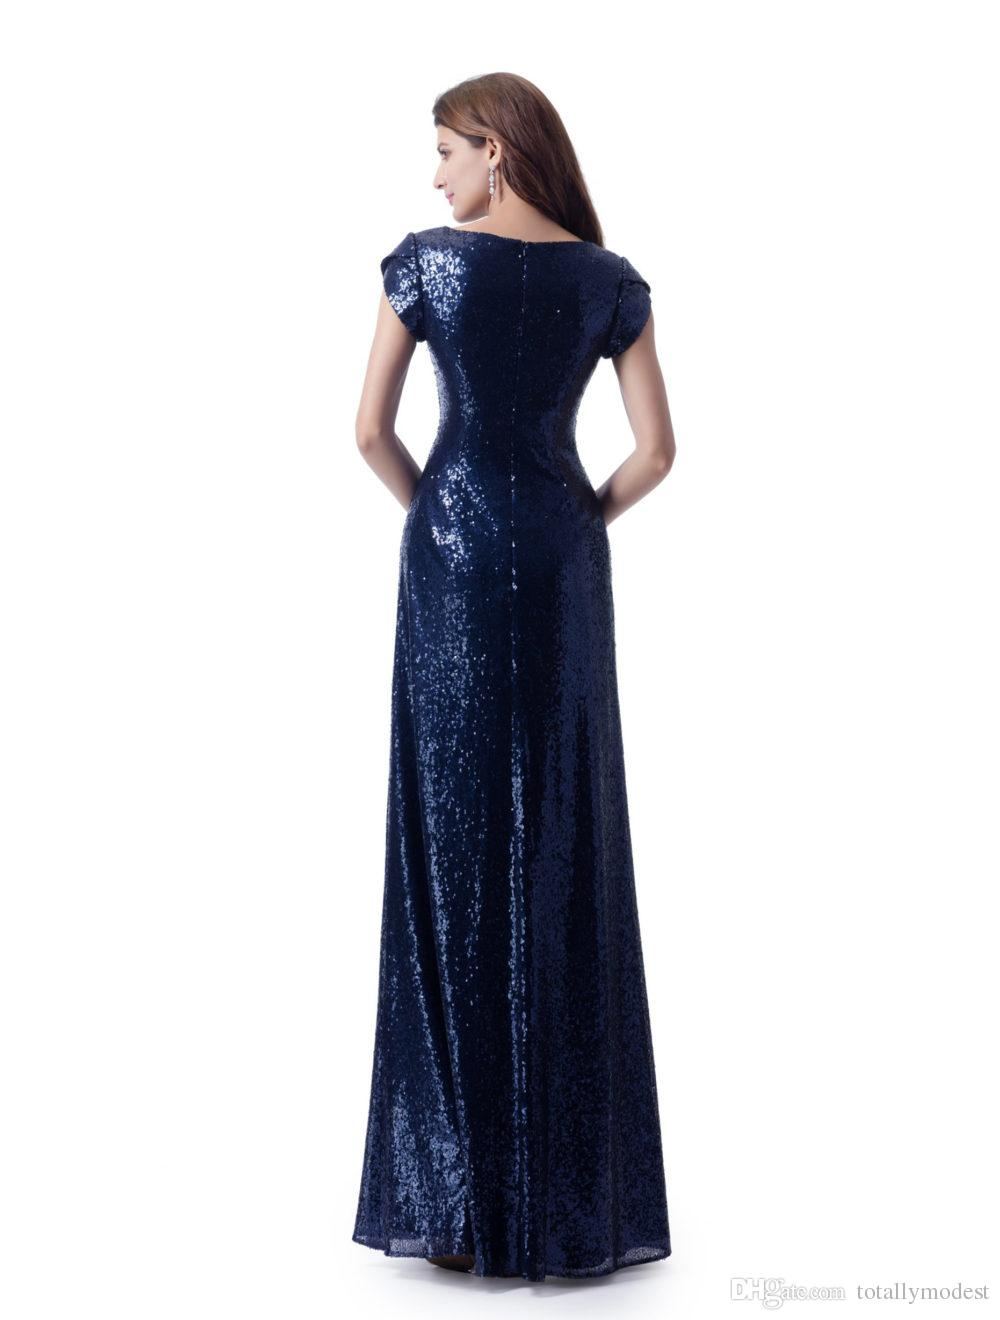 Navy Blue Sequins Long Modest Bridesmaid Dresses With Short Sleeves Fit Formal Wedding Party Dresses For Winter Wedding Custom Made